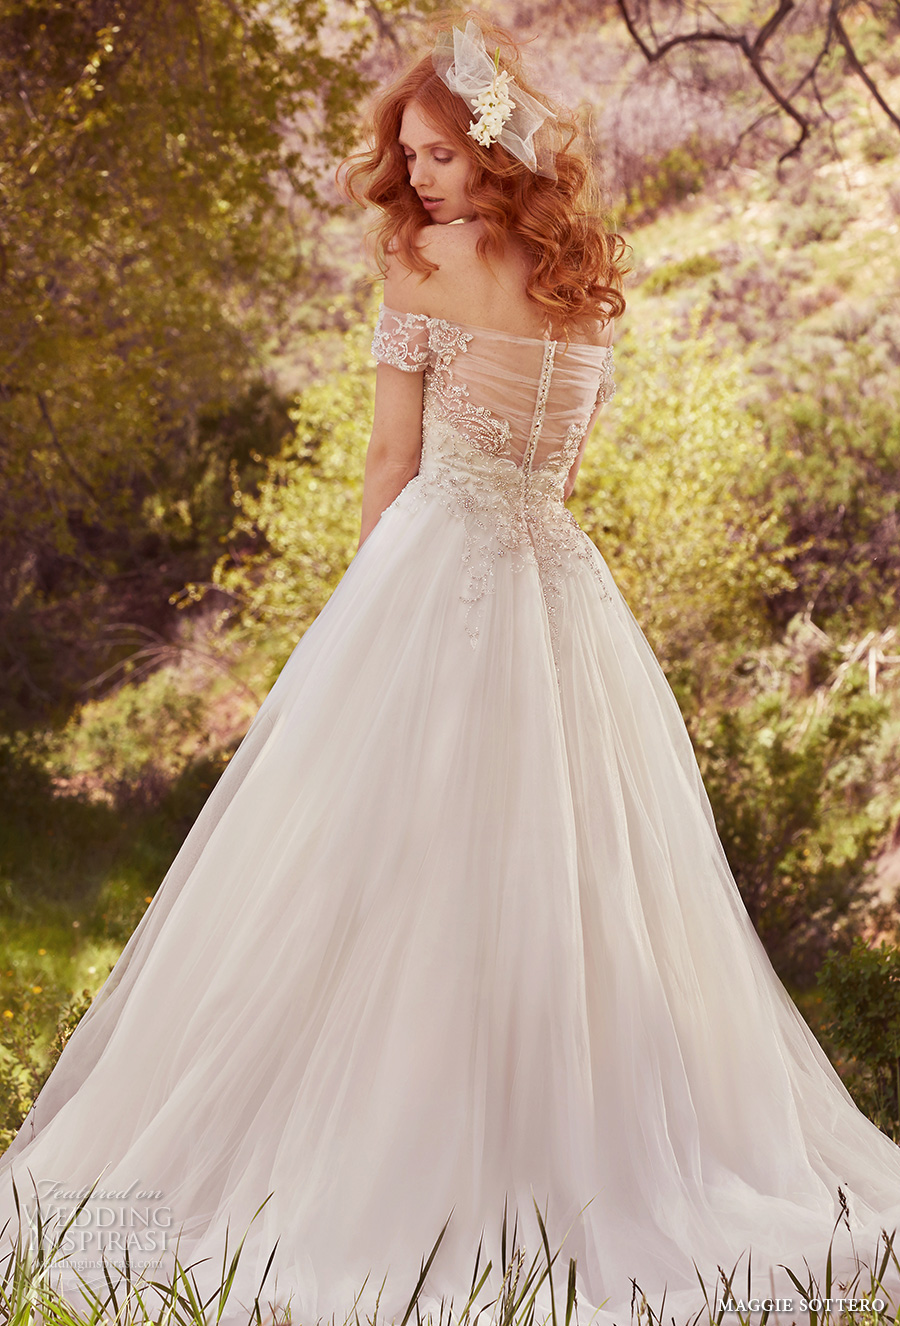 Embellished Sweetheart Soft And Dress Tulle And Fit Neckline Line Wedding Lace Flare